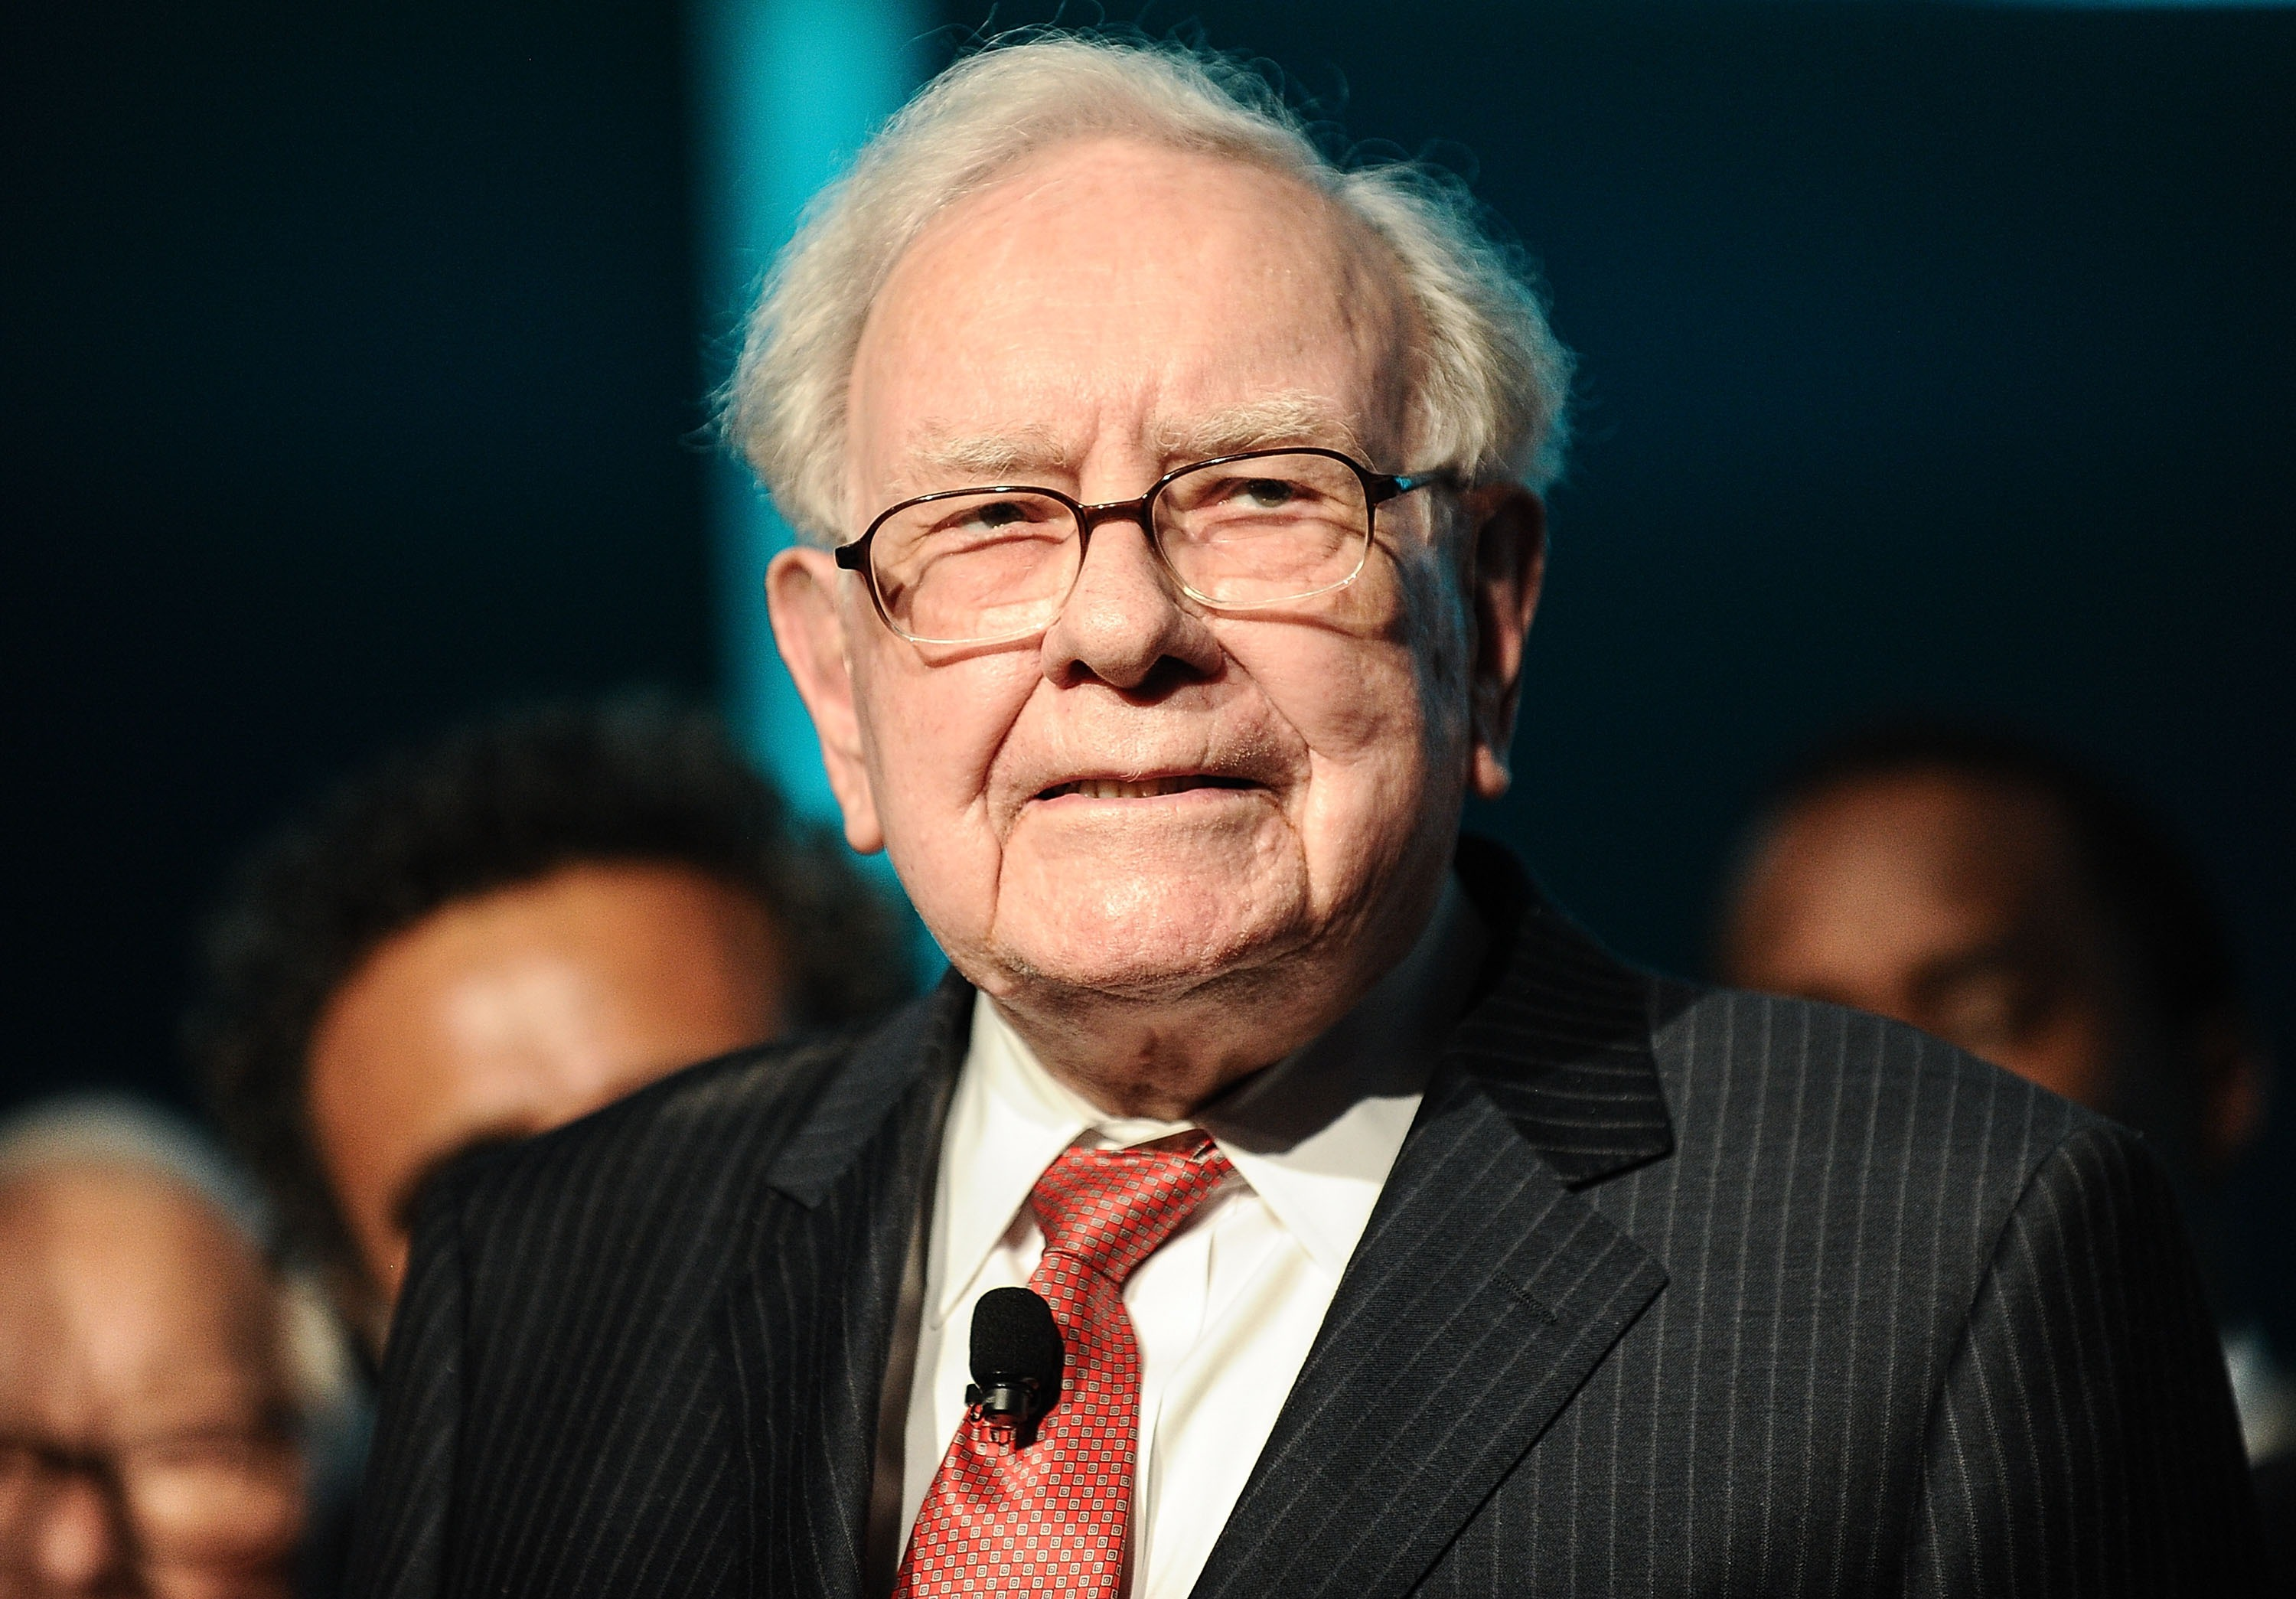 Warren Buffett at the Forbes Media Centennial Celebration